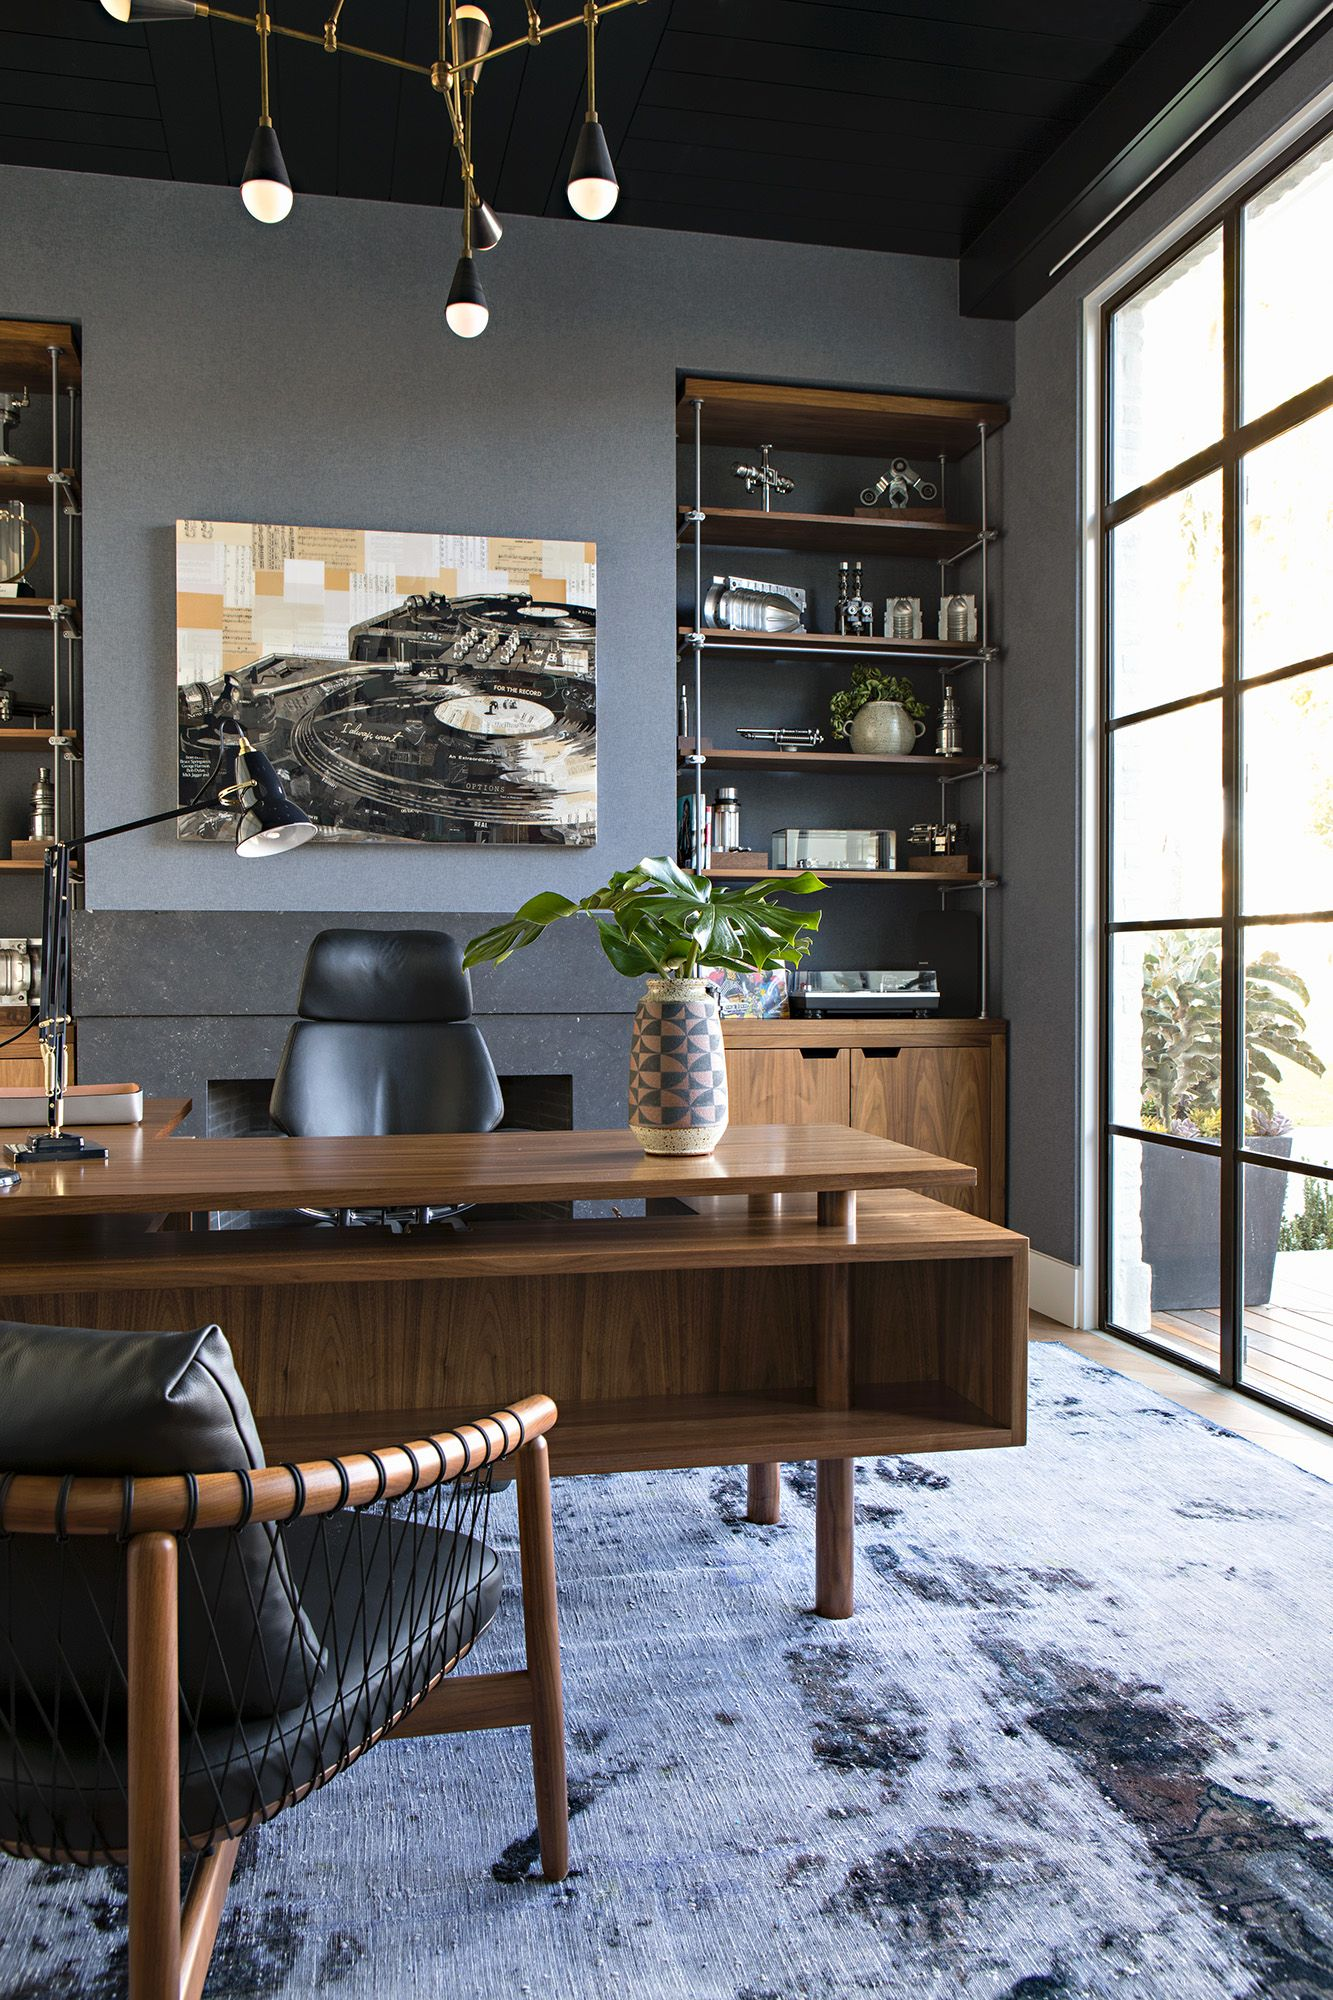 House Tour: Inside A Sun-Drenched Newport Beach Abode